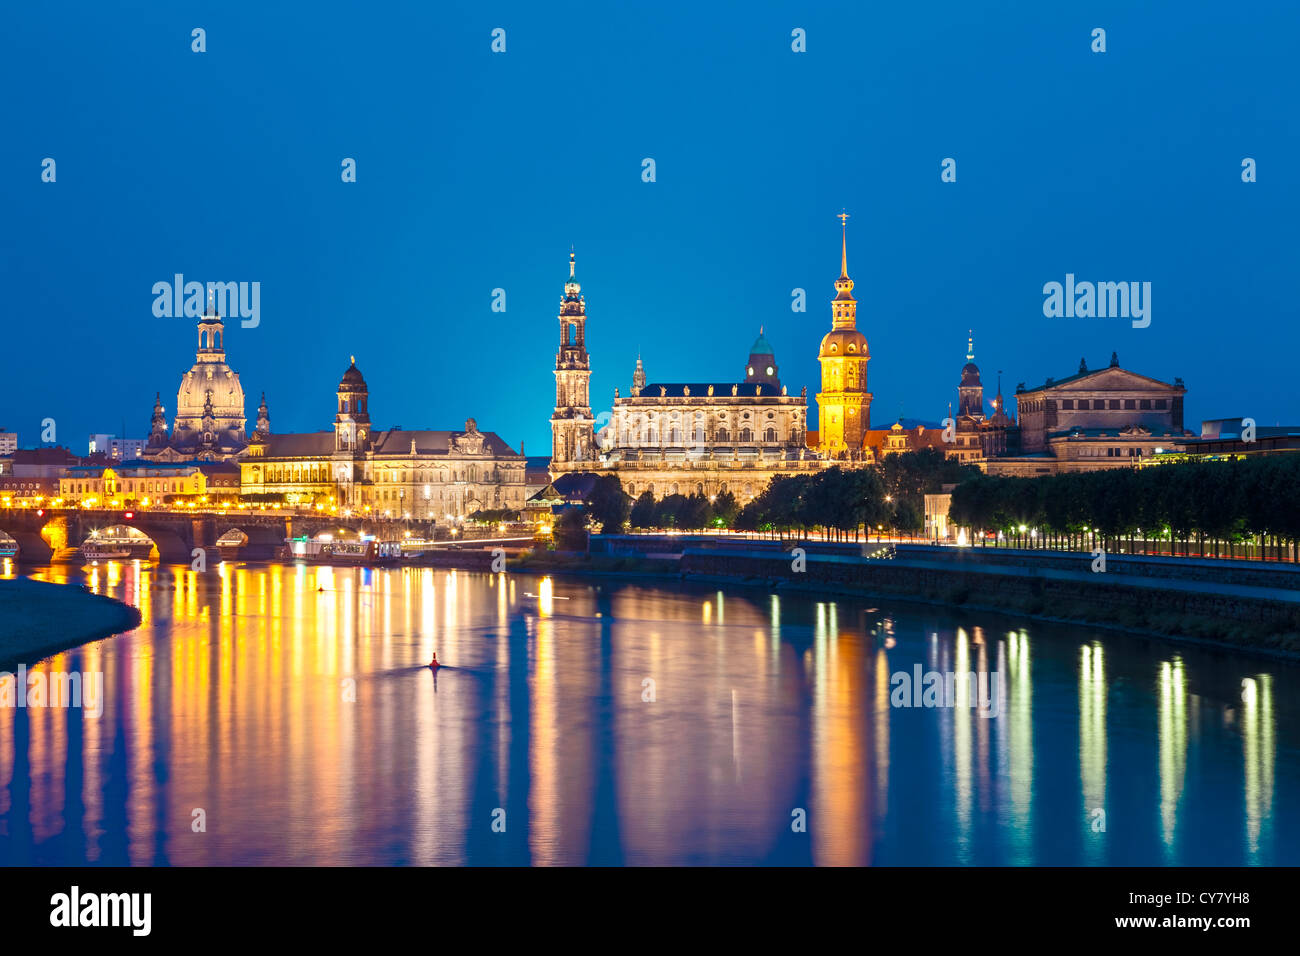 Toits de Dresde, Allemagne Photo Stock